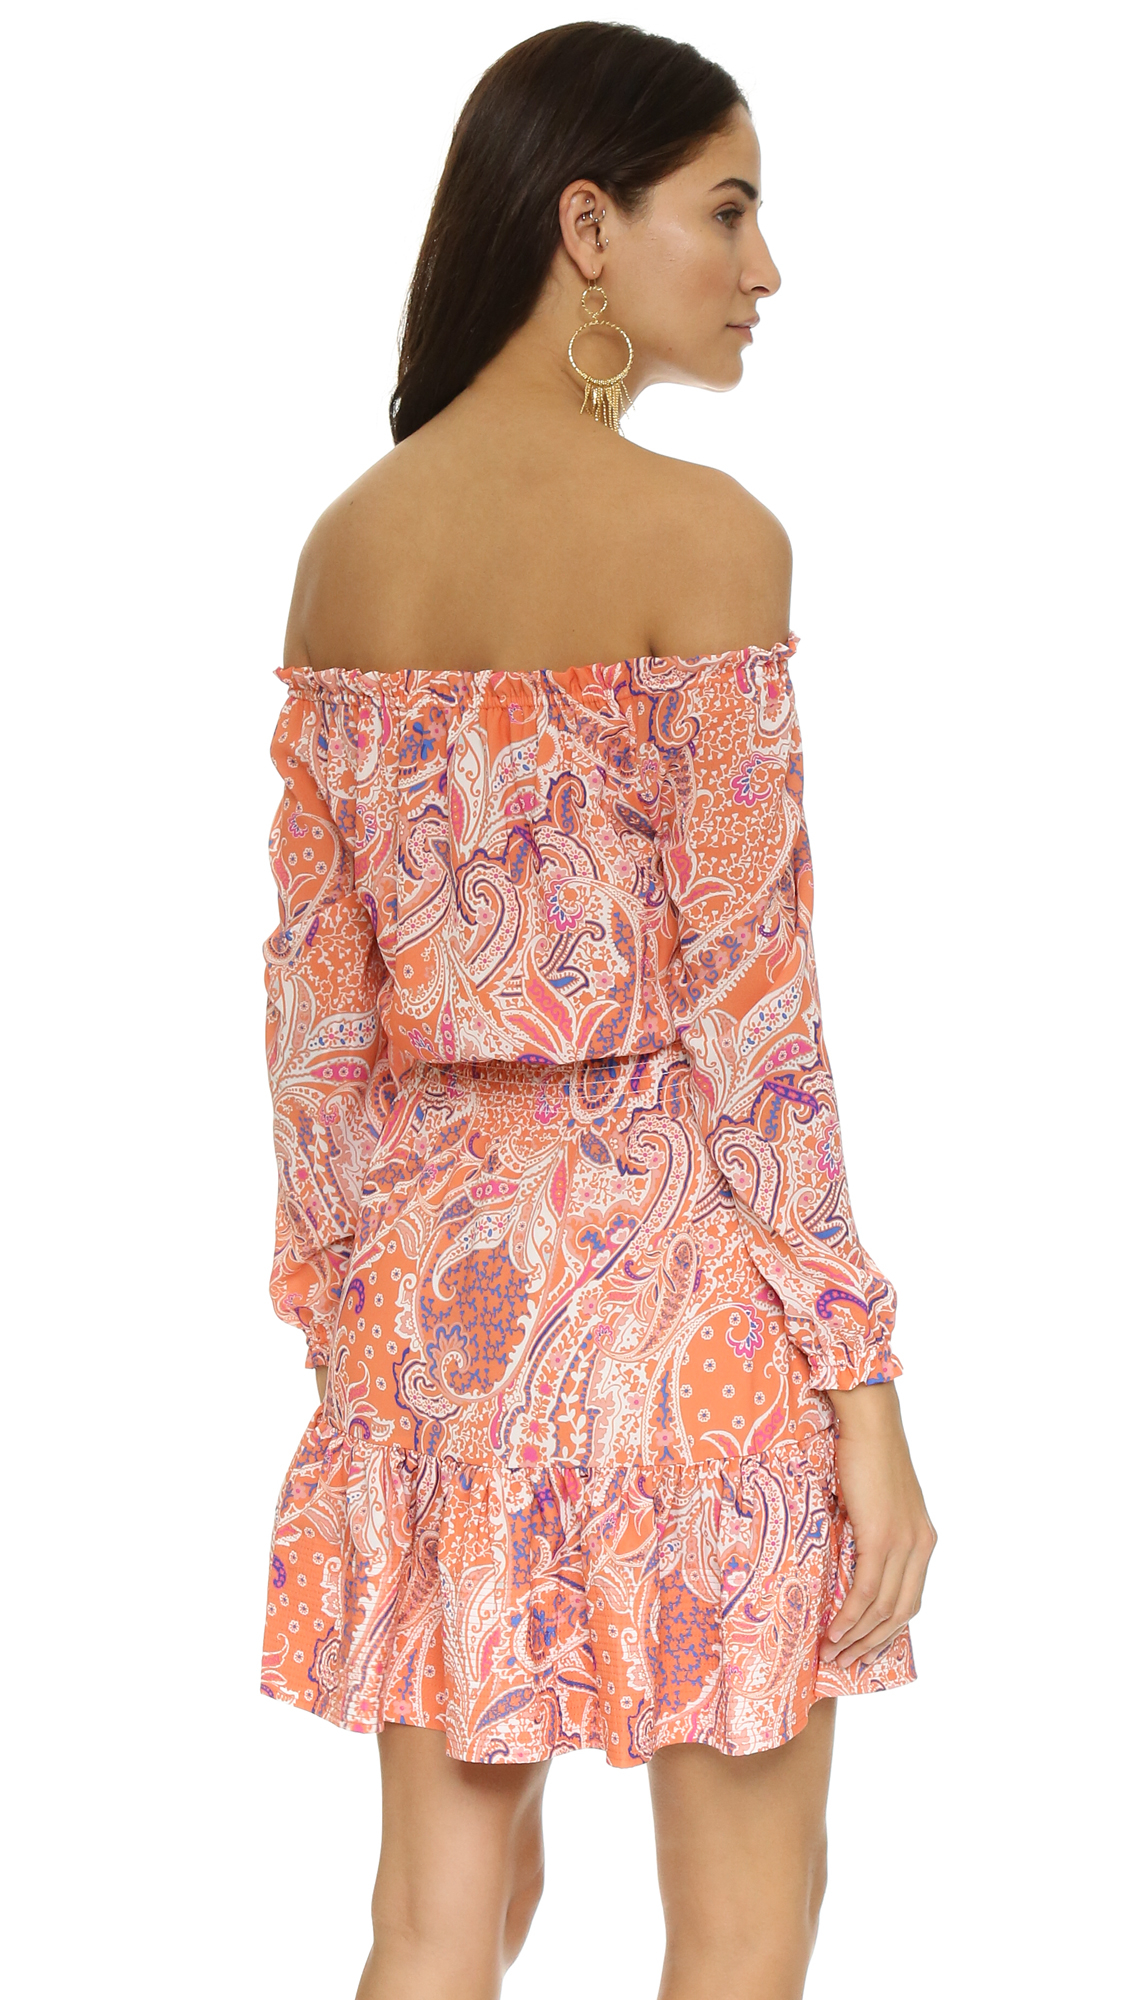 Looking for hot, off-the-shoulder looks? Lulu's has the cutest selection of off-the-shoulder and cold-shoulder tops, dresses, and rompers! Dresses Red Dresses Blue Dresses Green Dresses Purple Dresses Teal Dresses Pink Dresses Peach Dresses Grey Dresses Coral and Orange Dresses Taupe Dresses Yellow Dresses. 70% OFF .